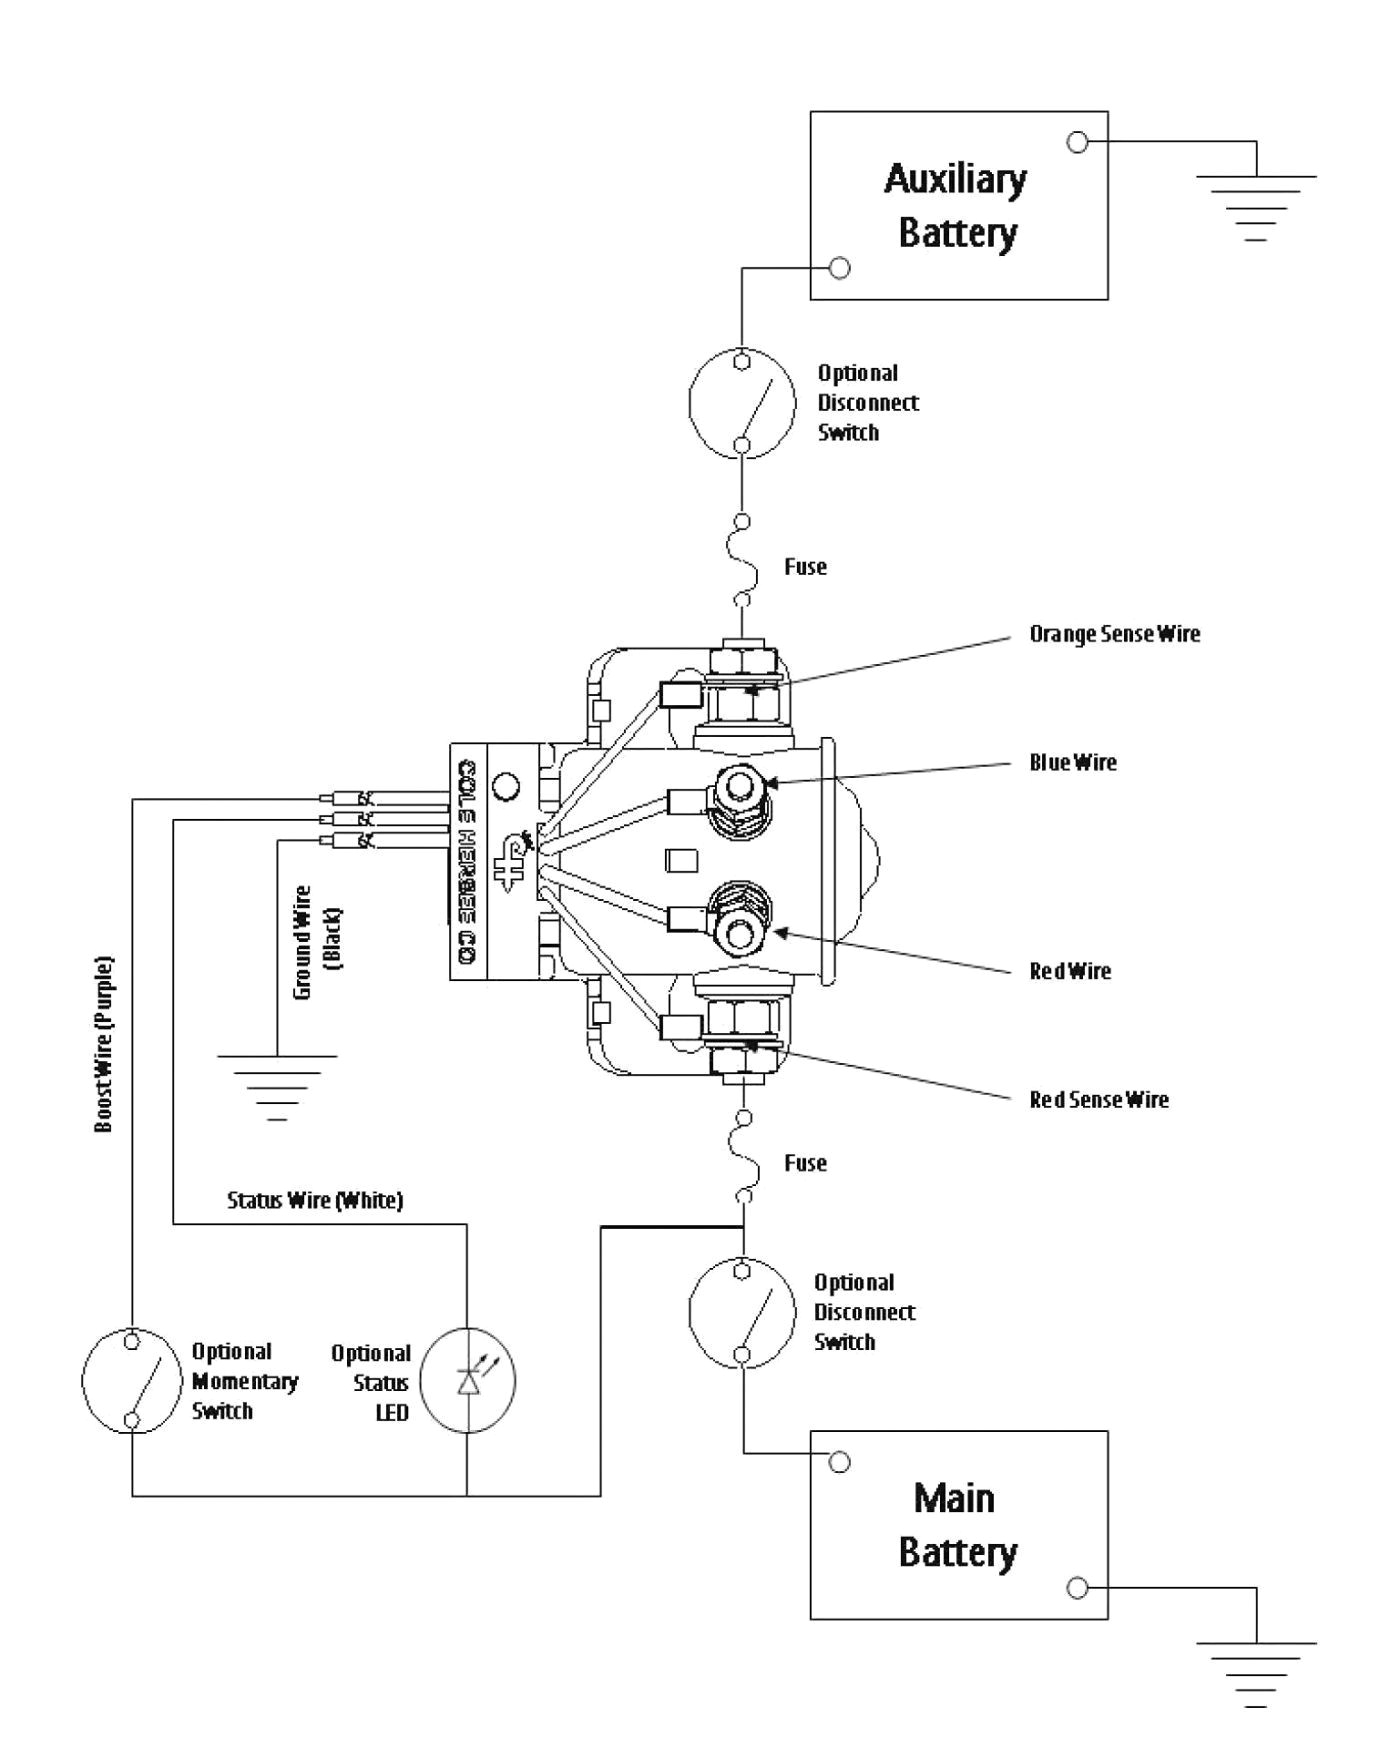 superwinch lt3000 wiring diagram beautiful superwinch lt3000 atv wiring diagram pickenscountymedicalcenter jpg